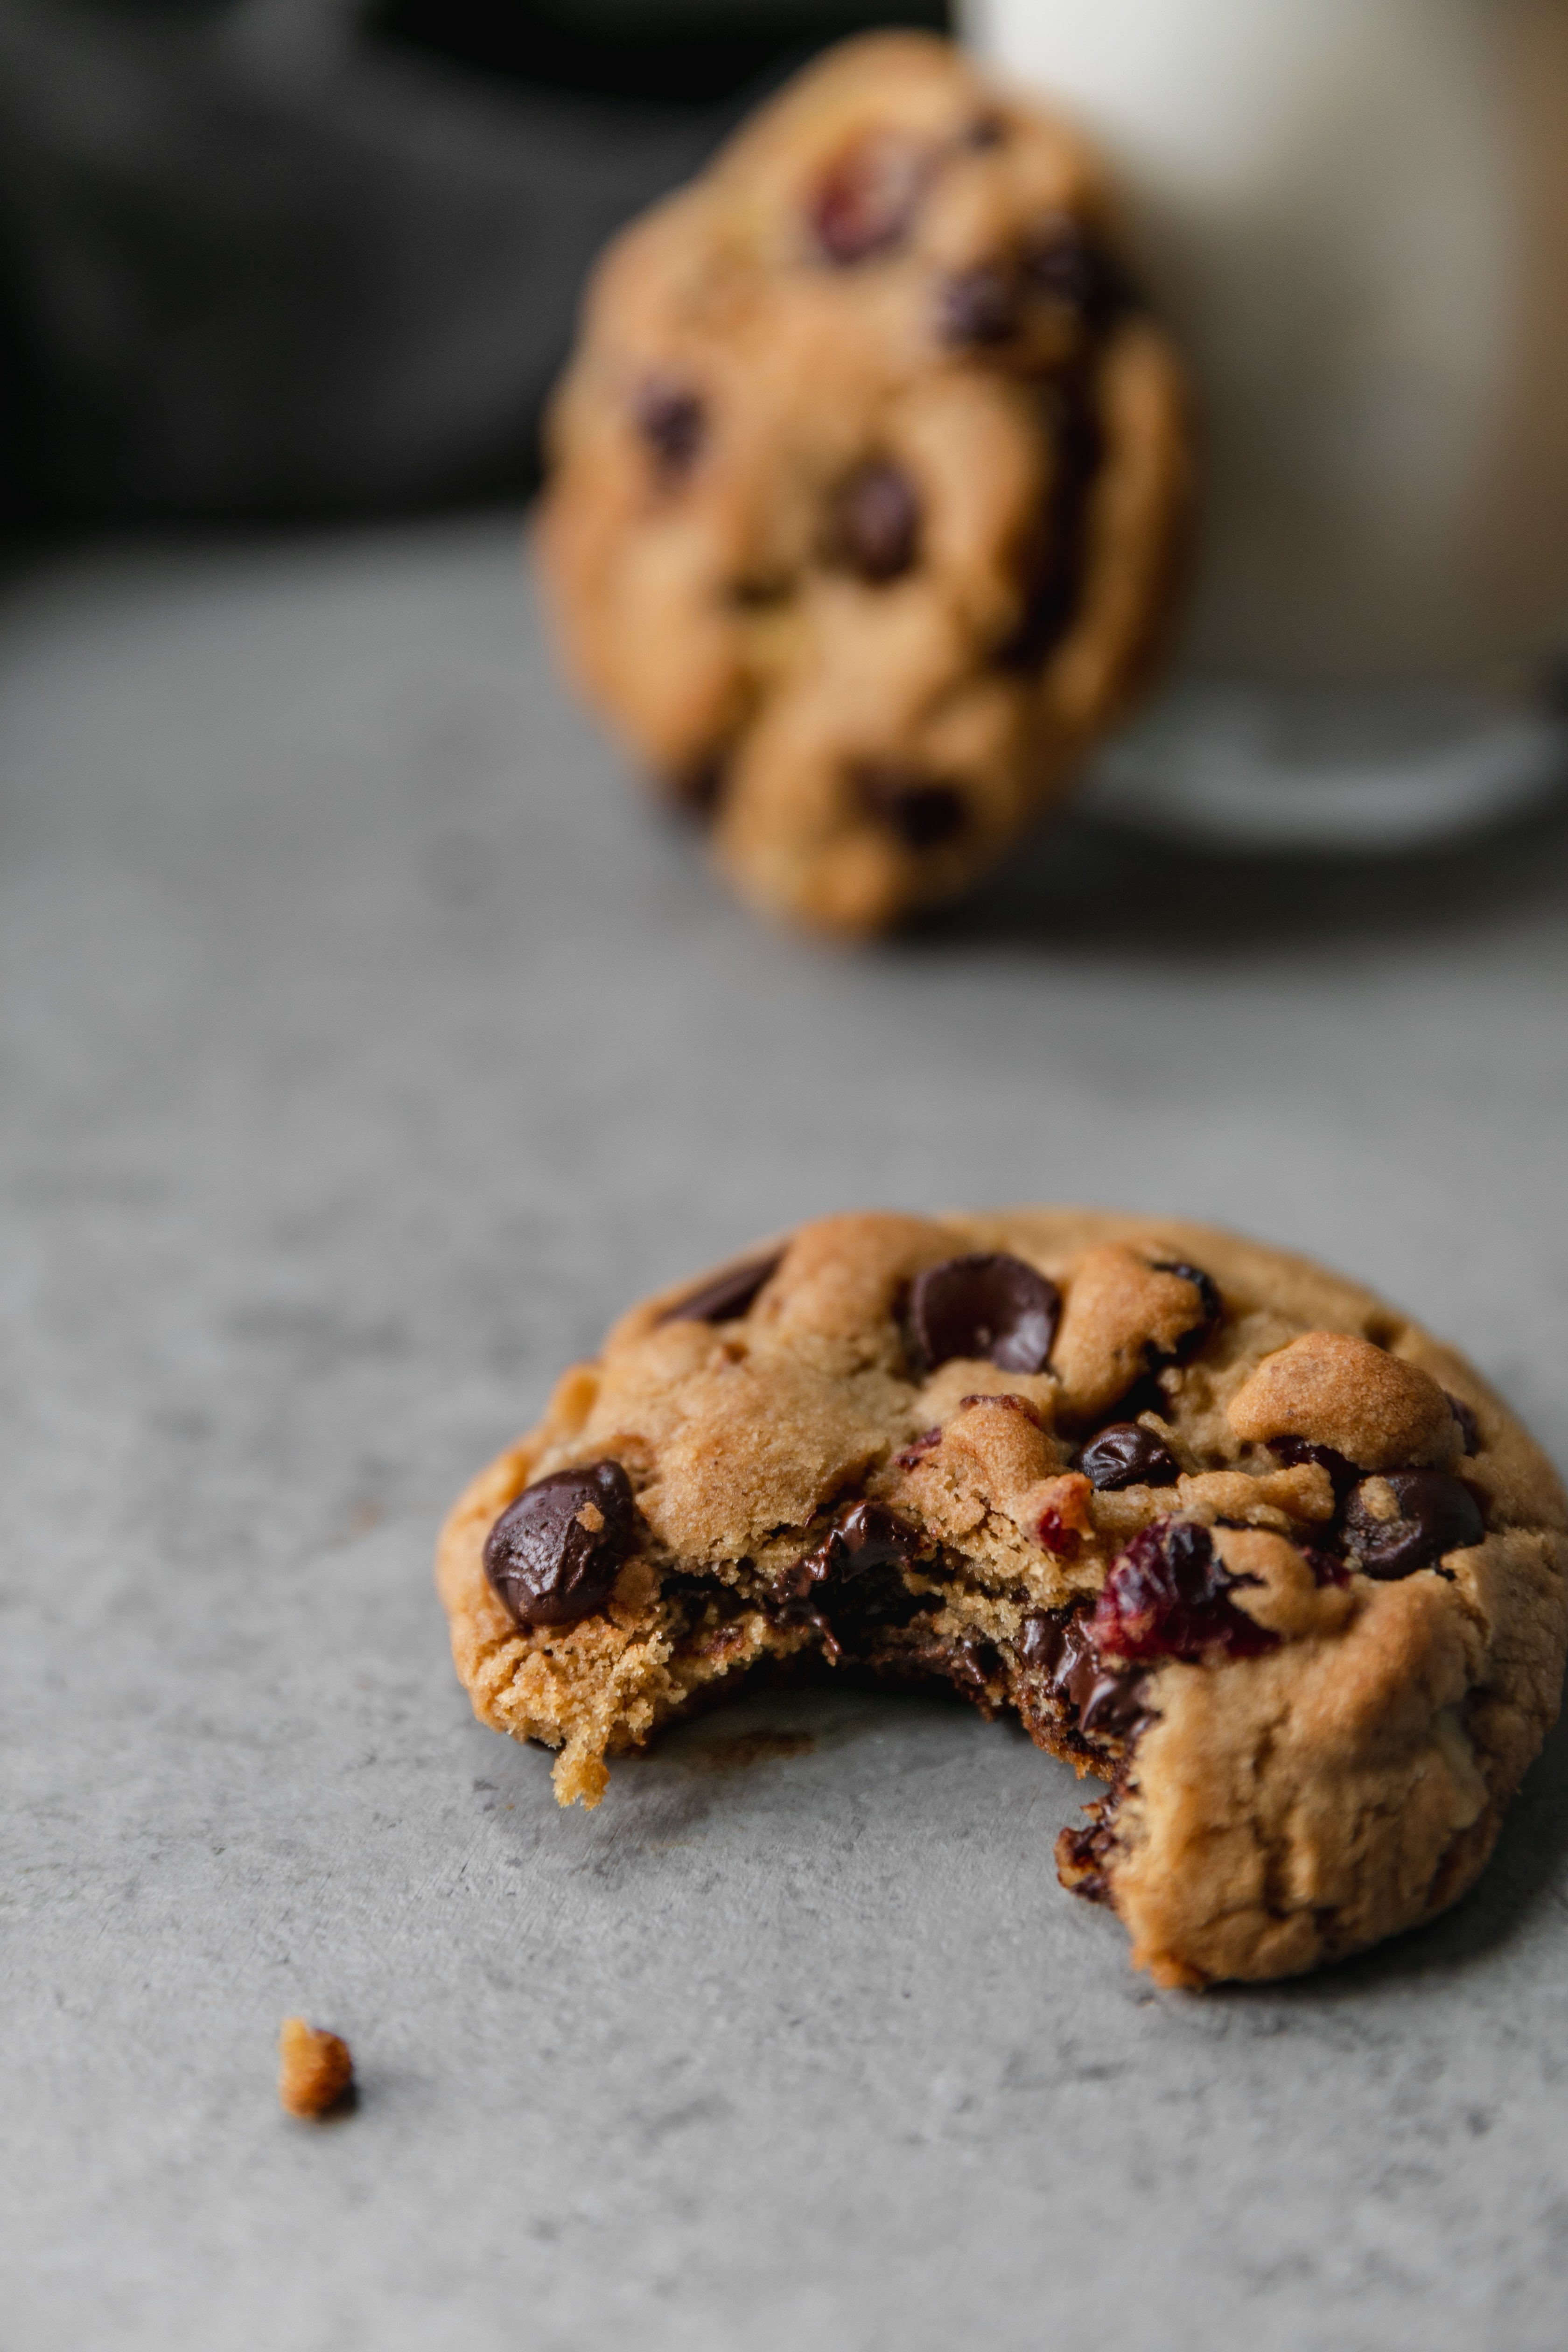 Close up shot of a dark chocolate chip cranberry walnut cookie with a bite taken out of it